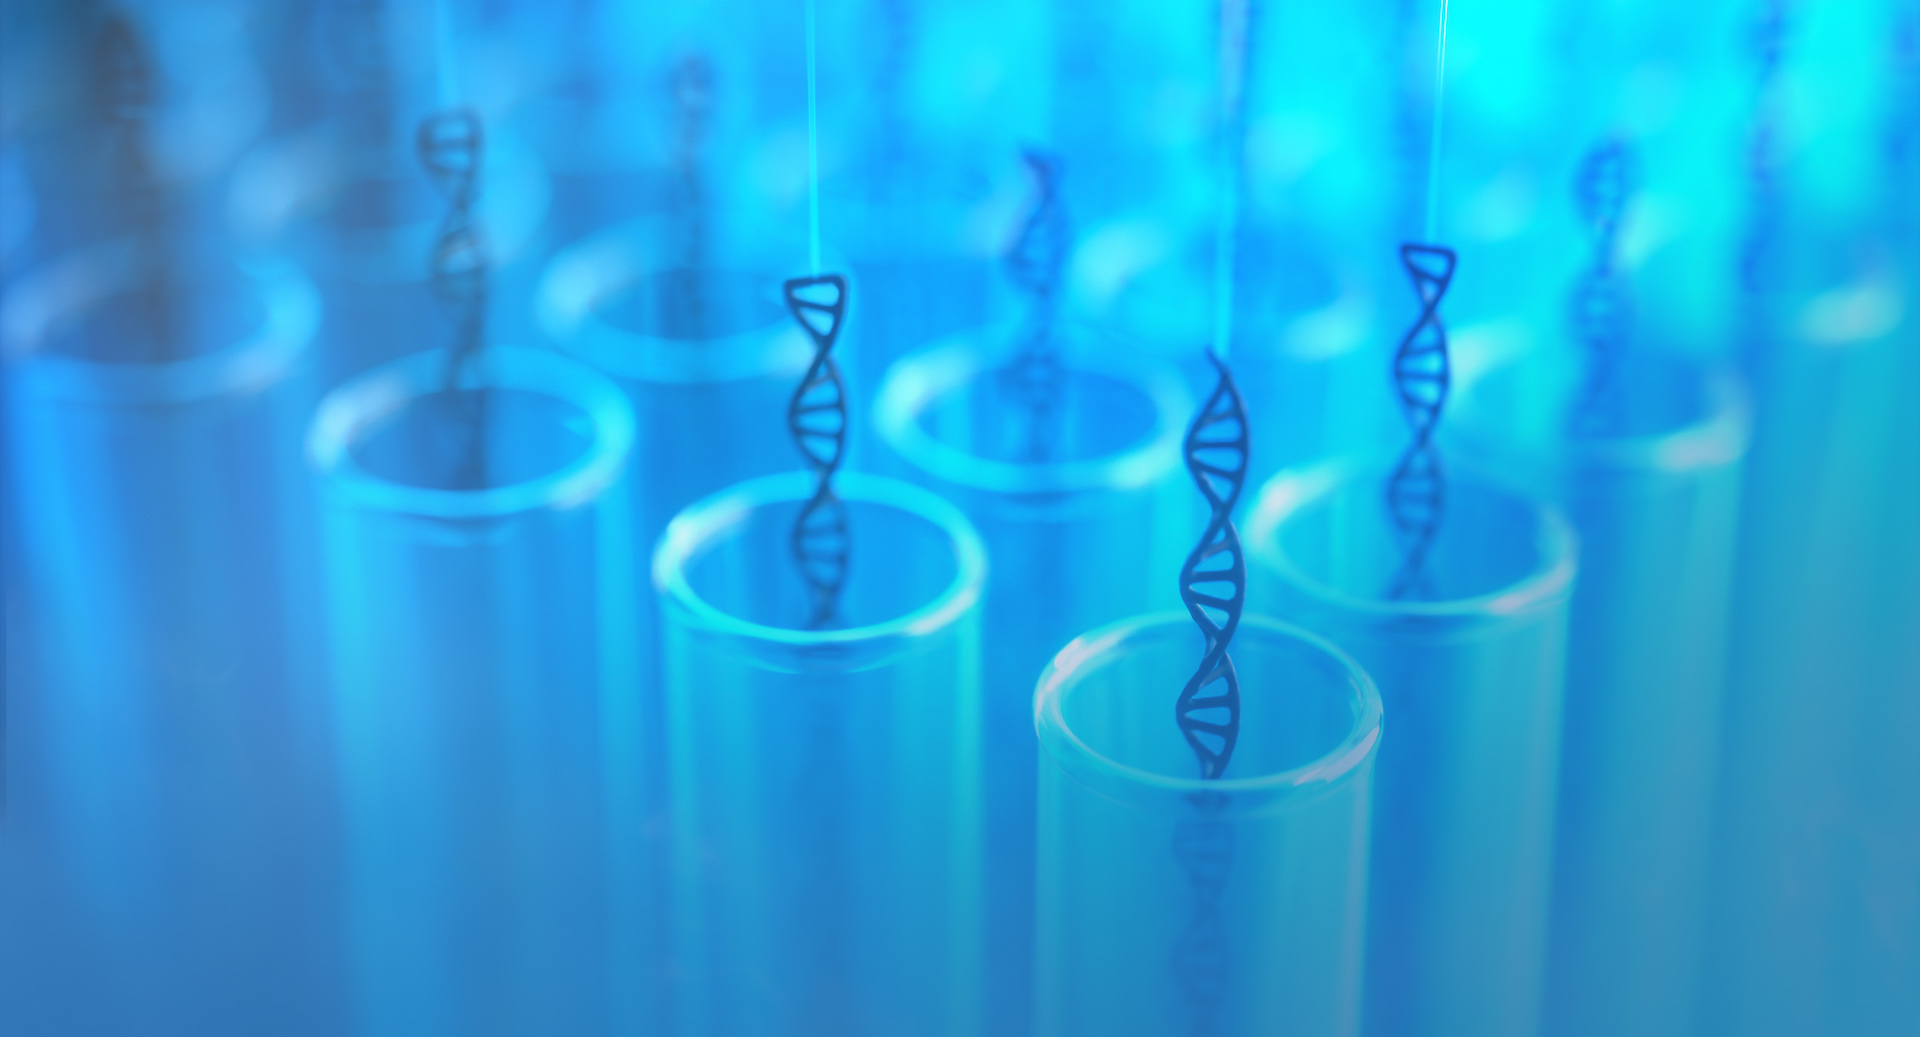 Test Tube DNA Cloning